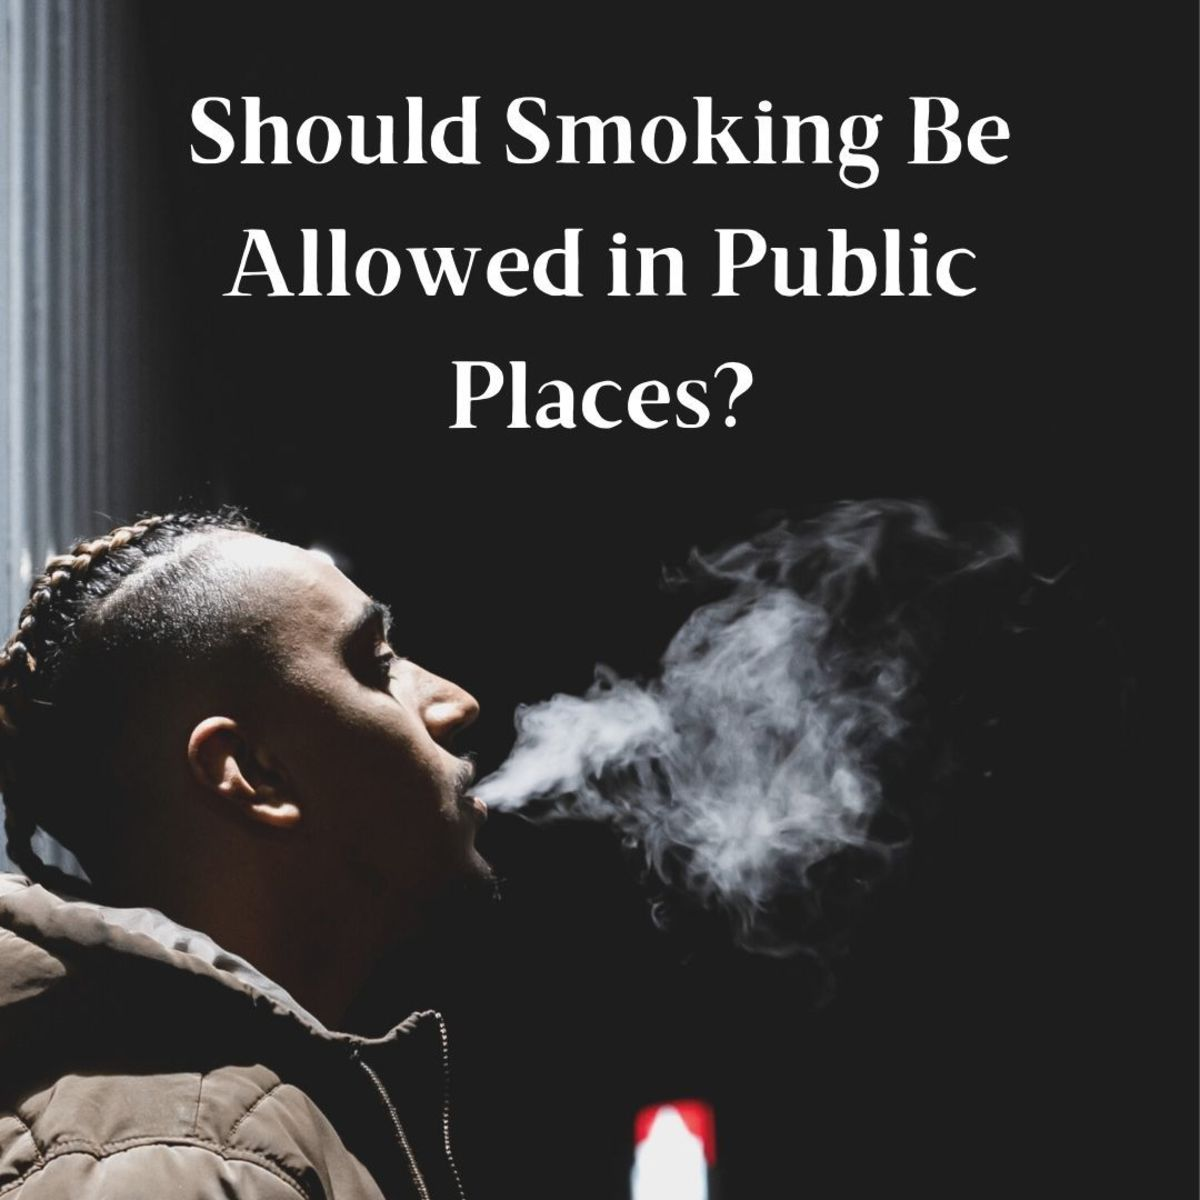 Should we allow people to smoke in public spaces?